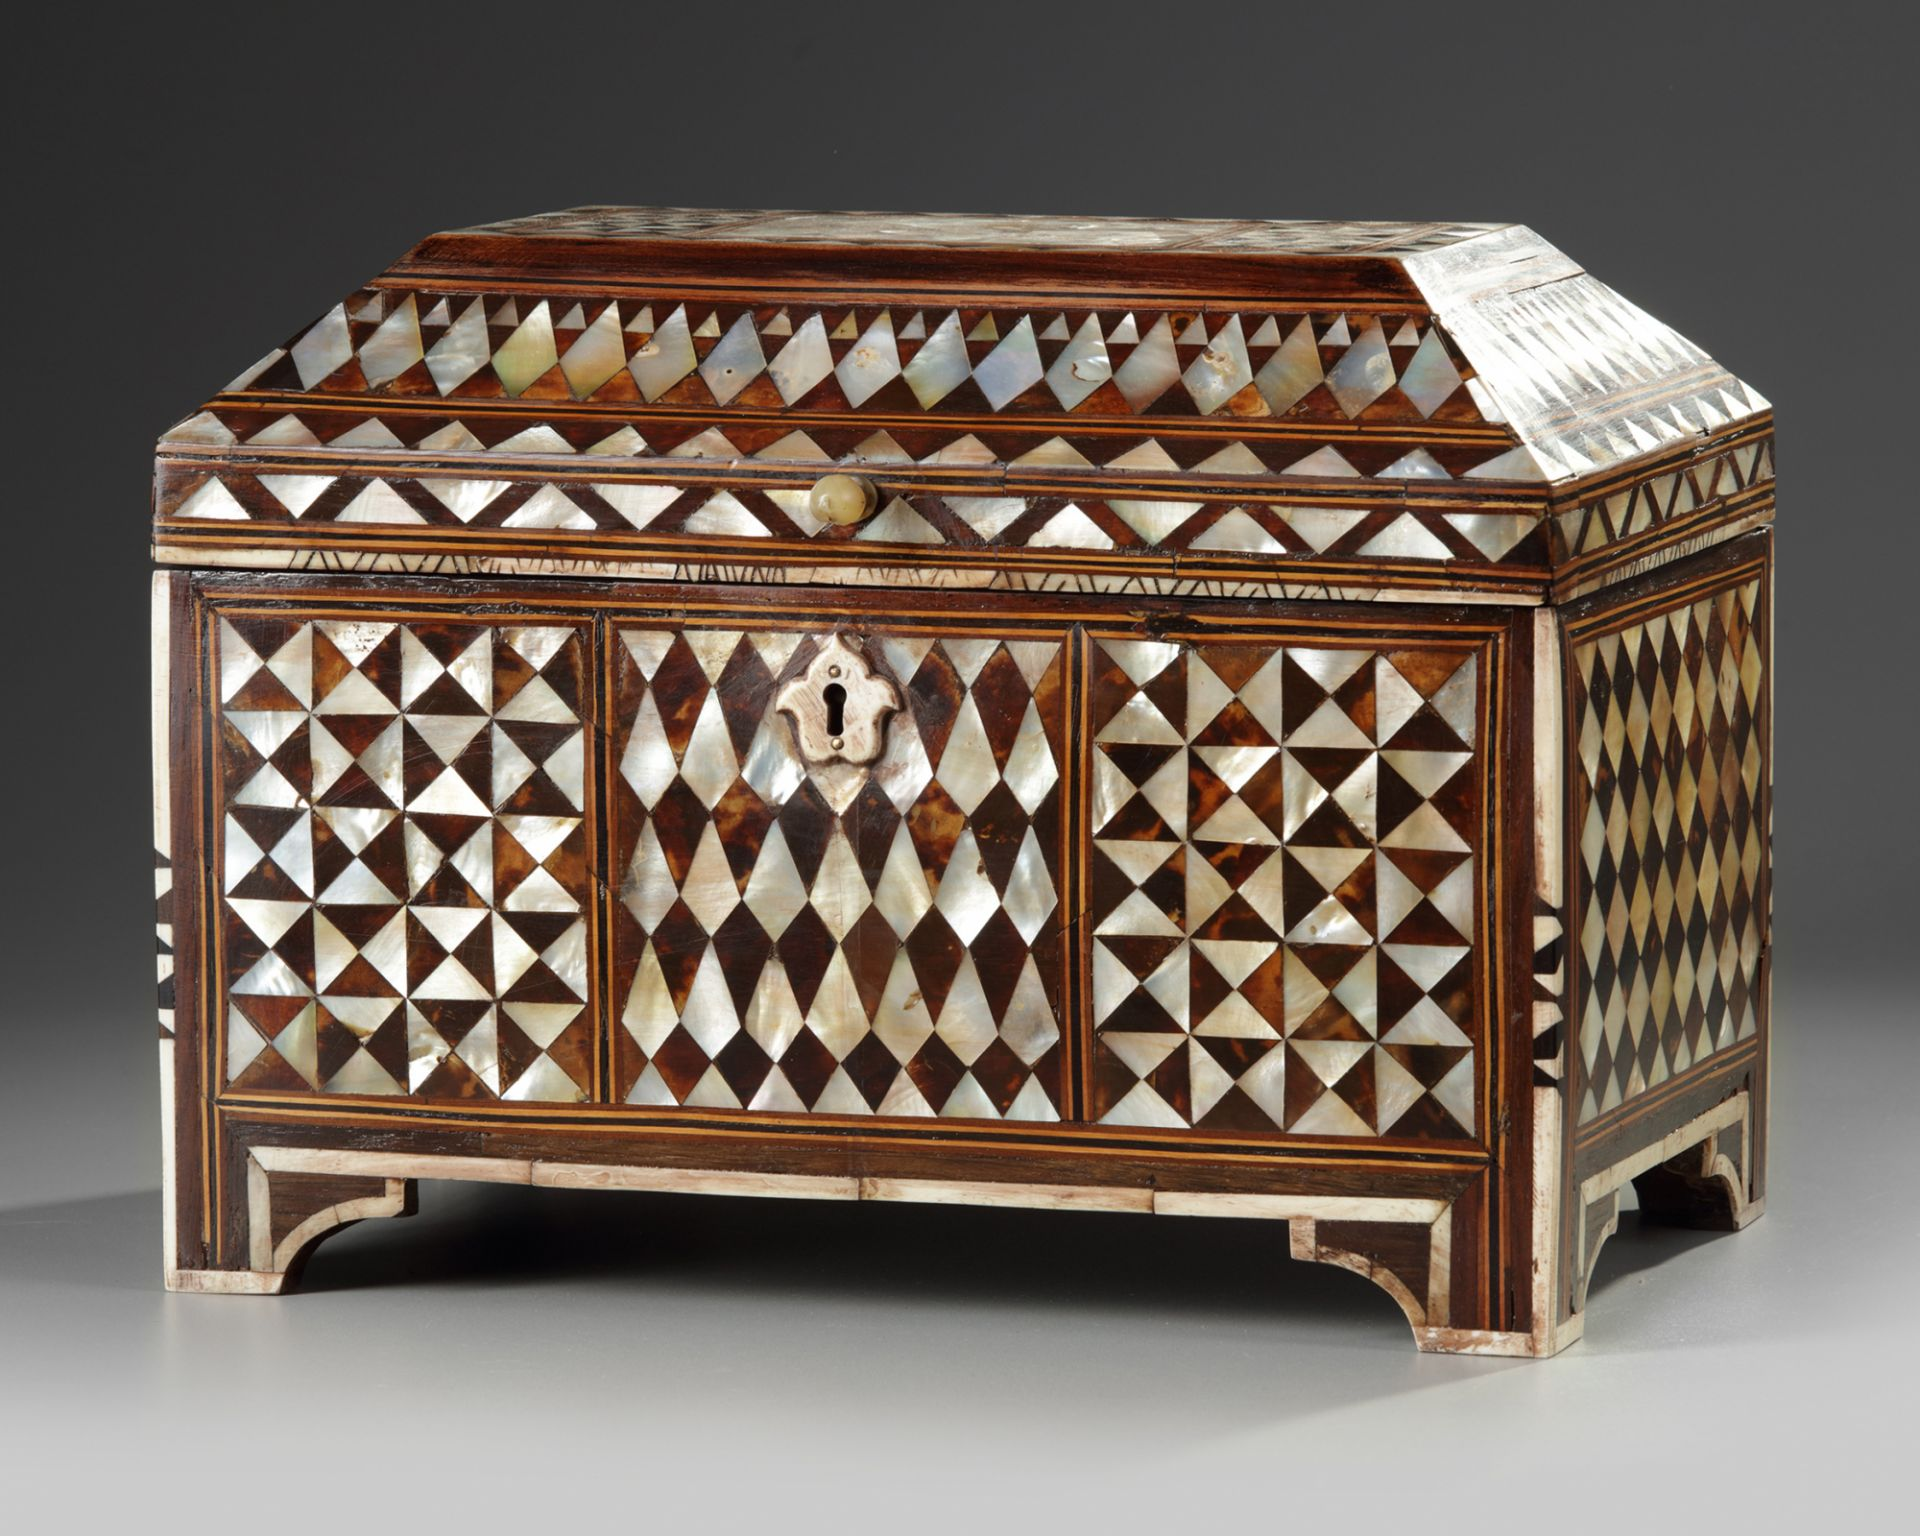 AN OTTOMAN MOTHER-OF-PEARL AND TORTOISESHELL INLAID CHEST